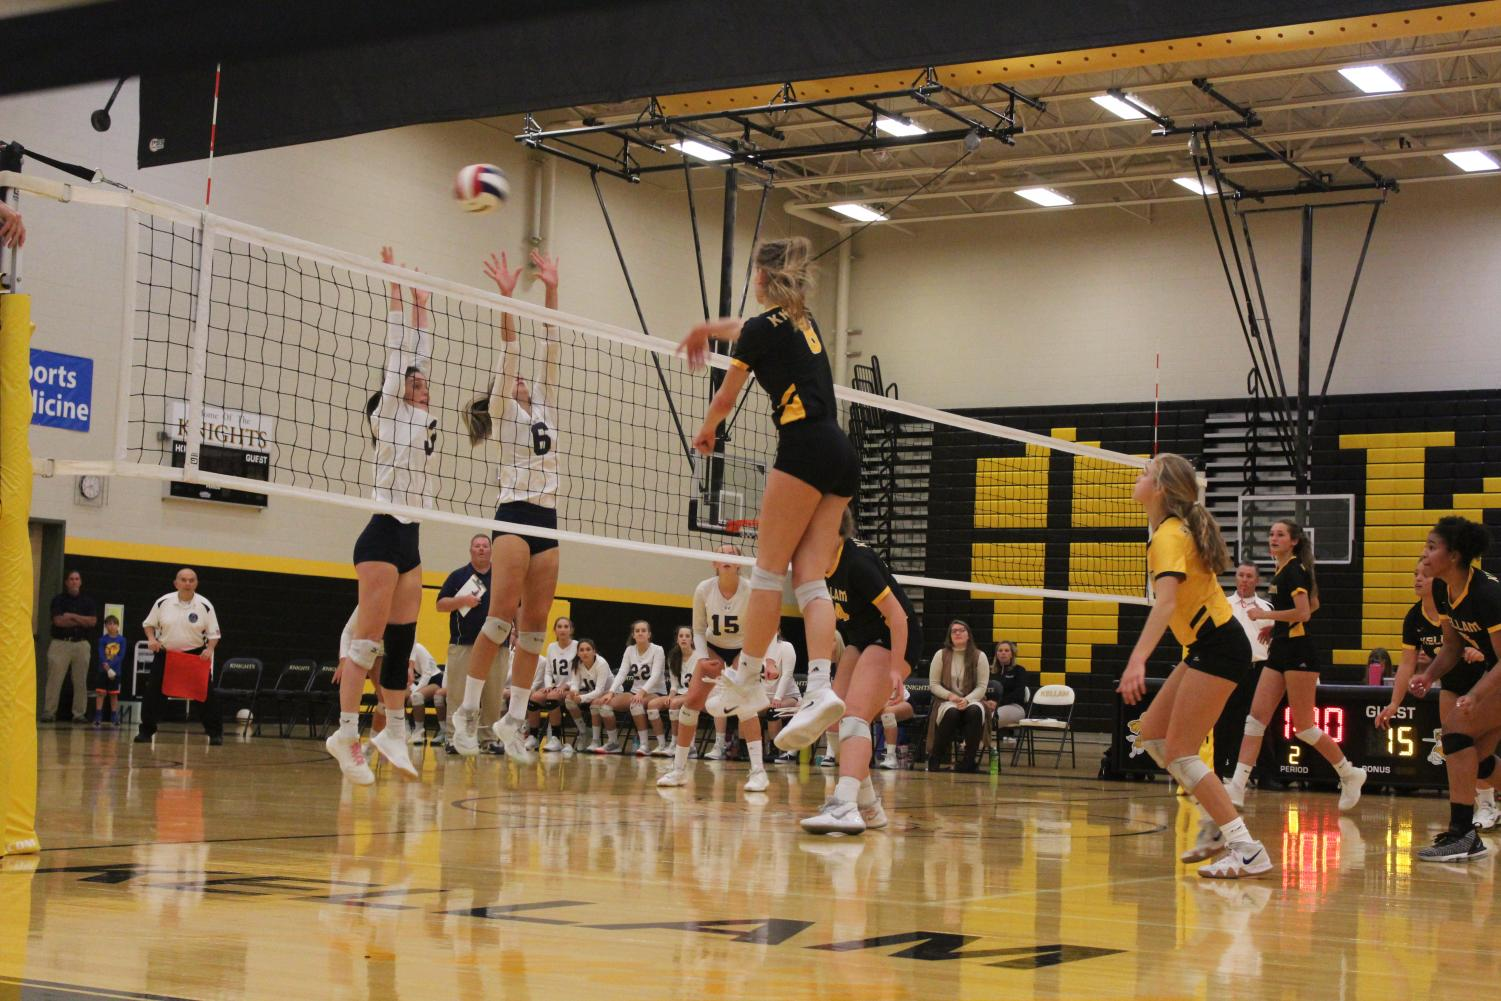 Girls volleyball stretches towards a spike. October 22, 2019.